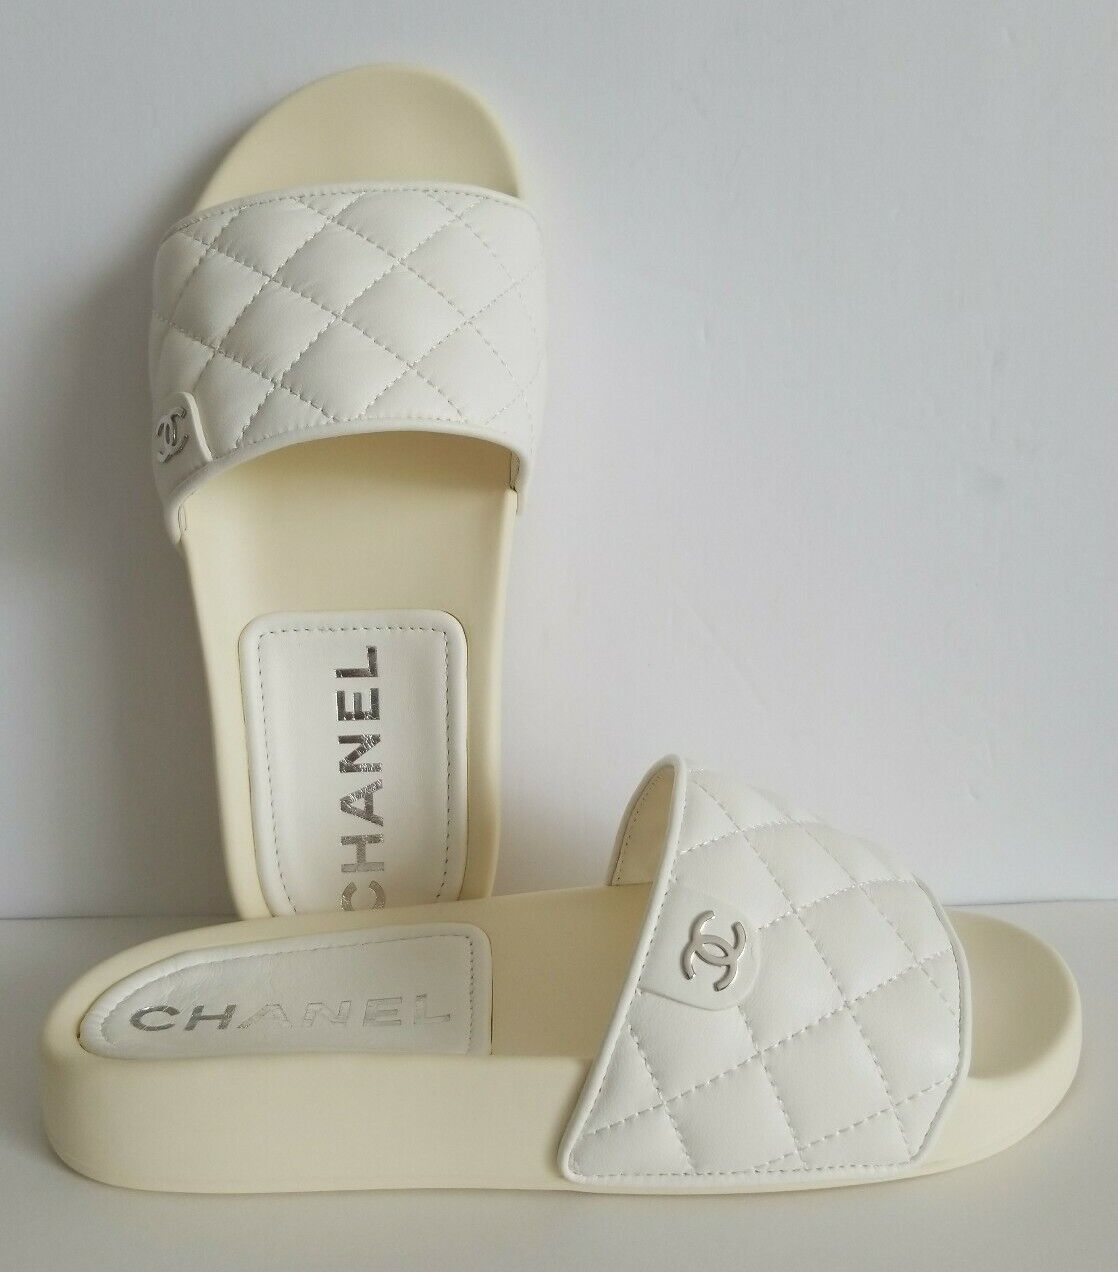 CHANEL ICONIC SUN DECK RARE QUILTED SILVER CC LOGO SLIDES I LOVE SHOES